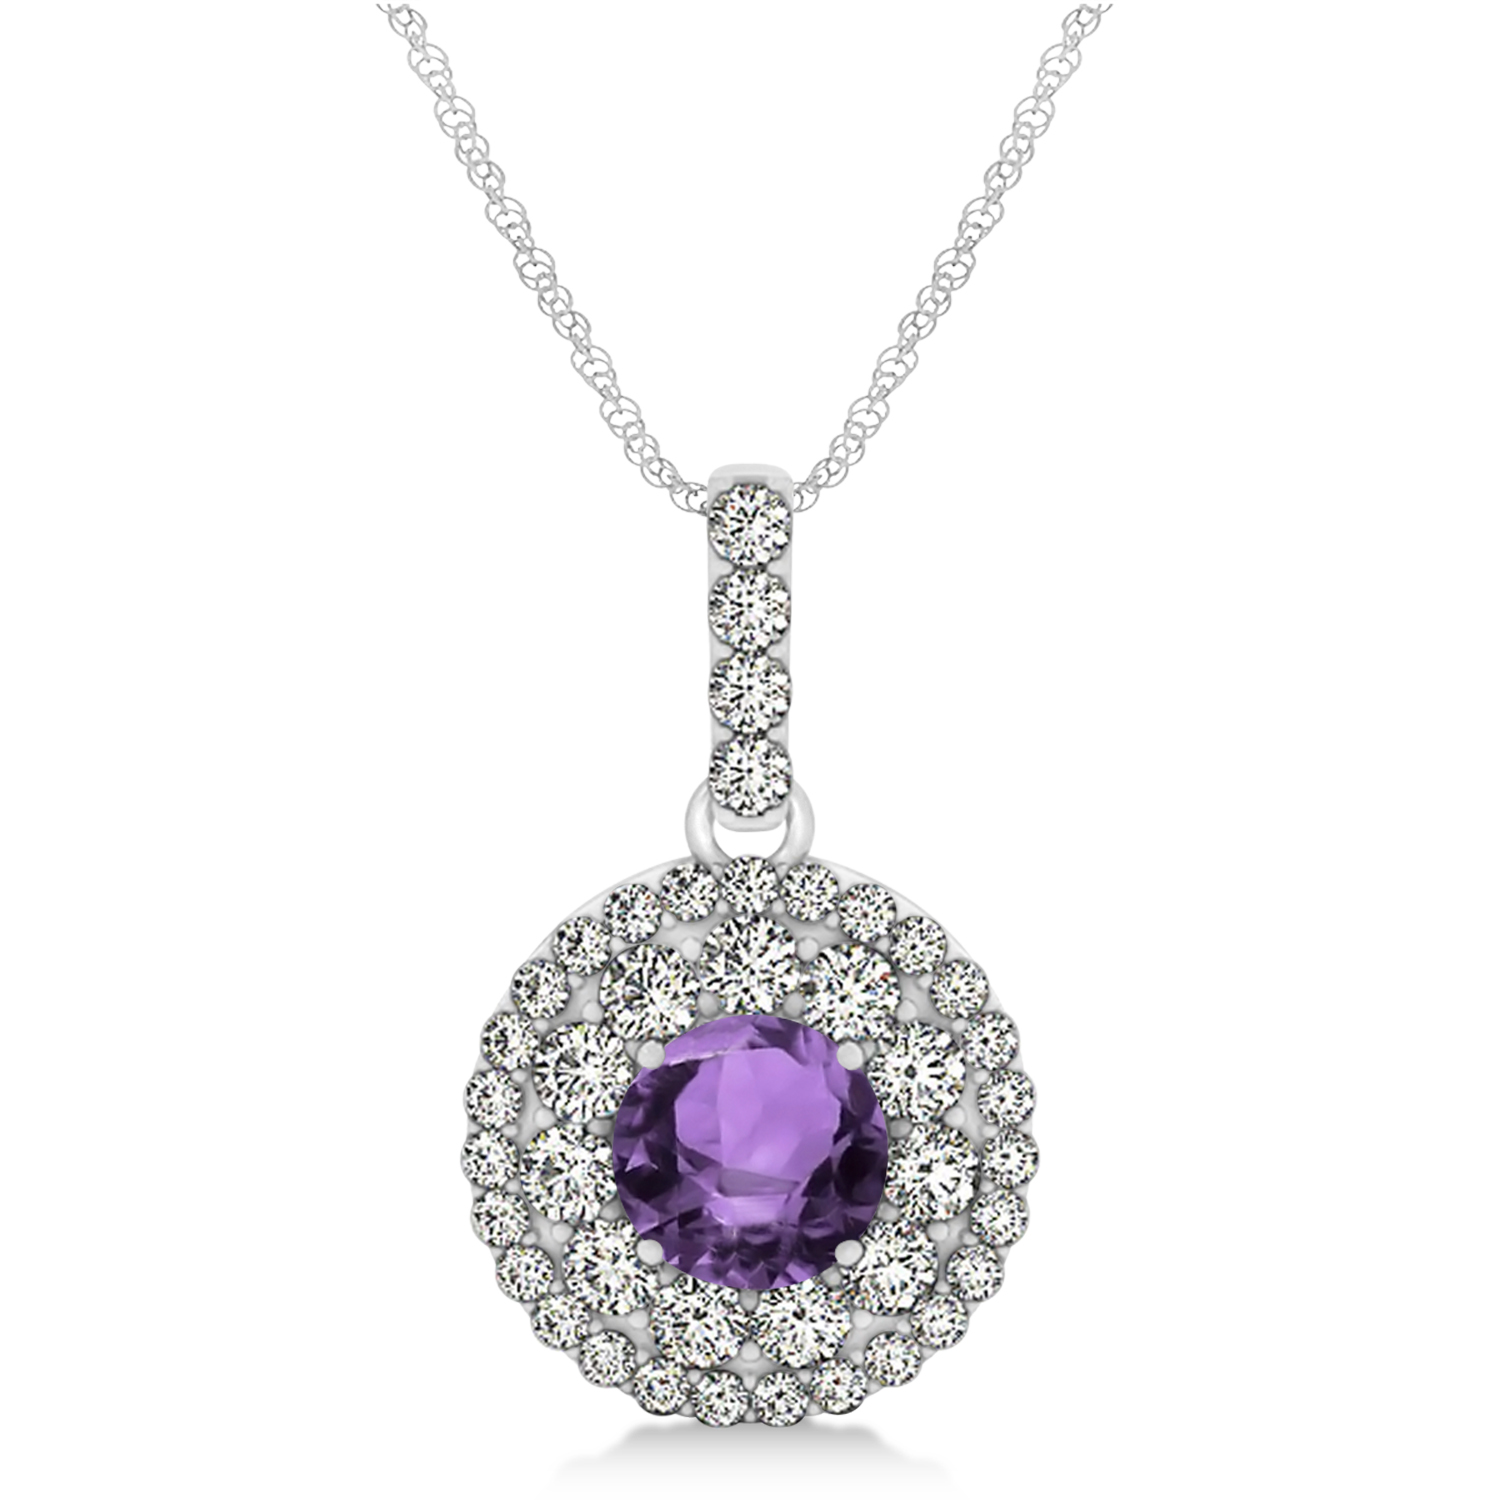 Round Double Halo Diamond & Amethyst Pendant 14k White Gold 1.21ct